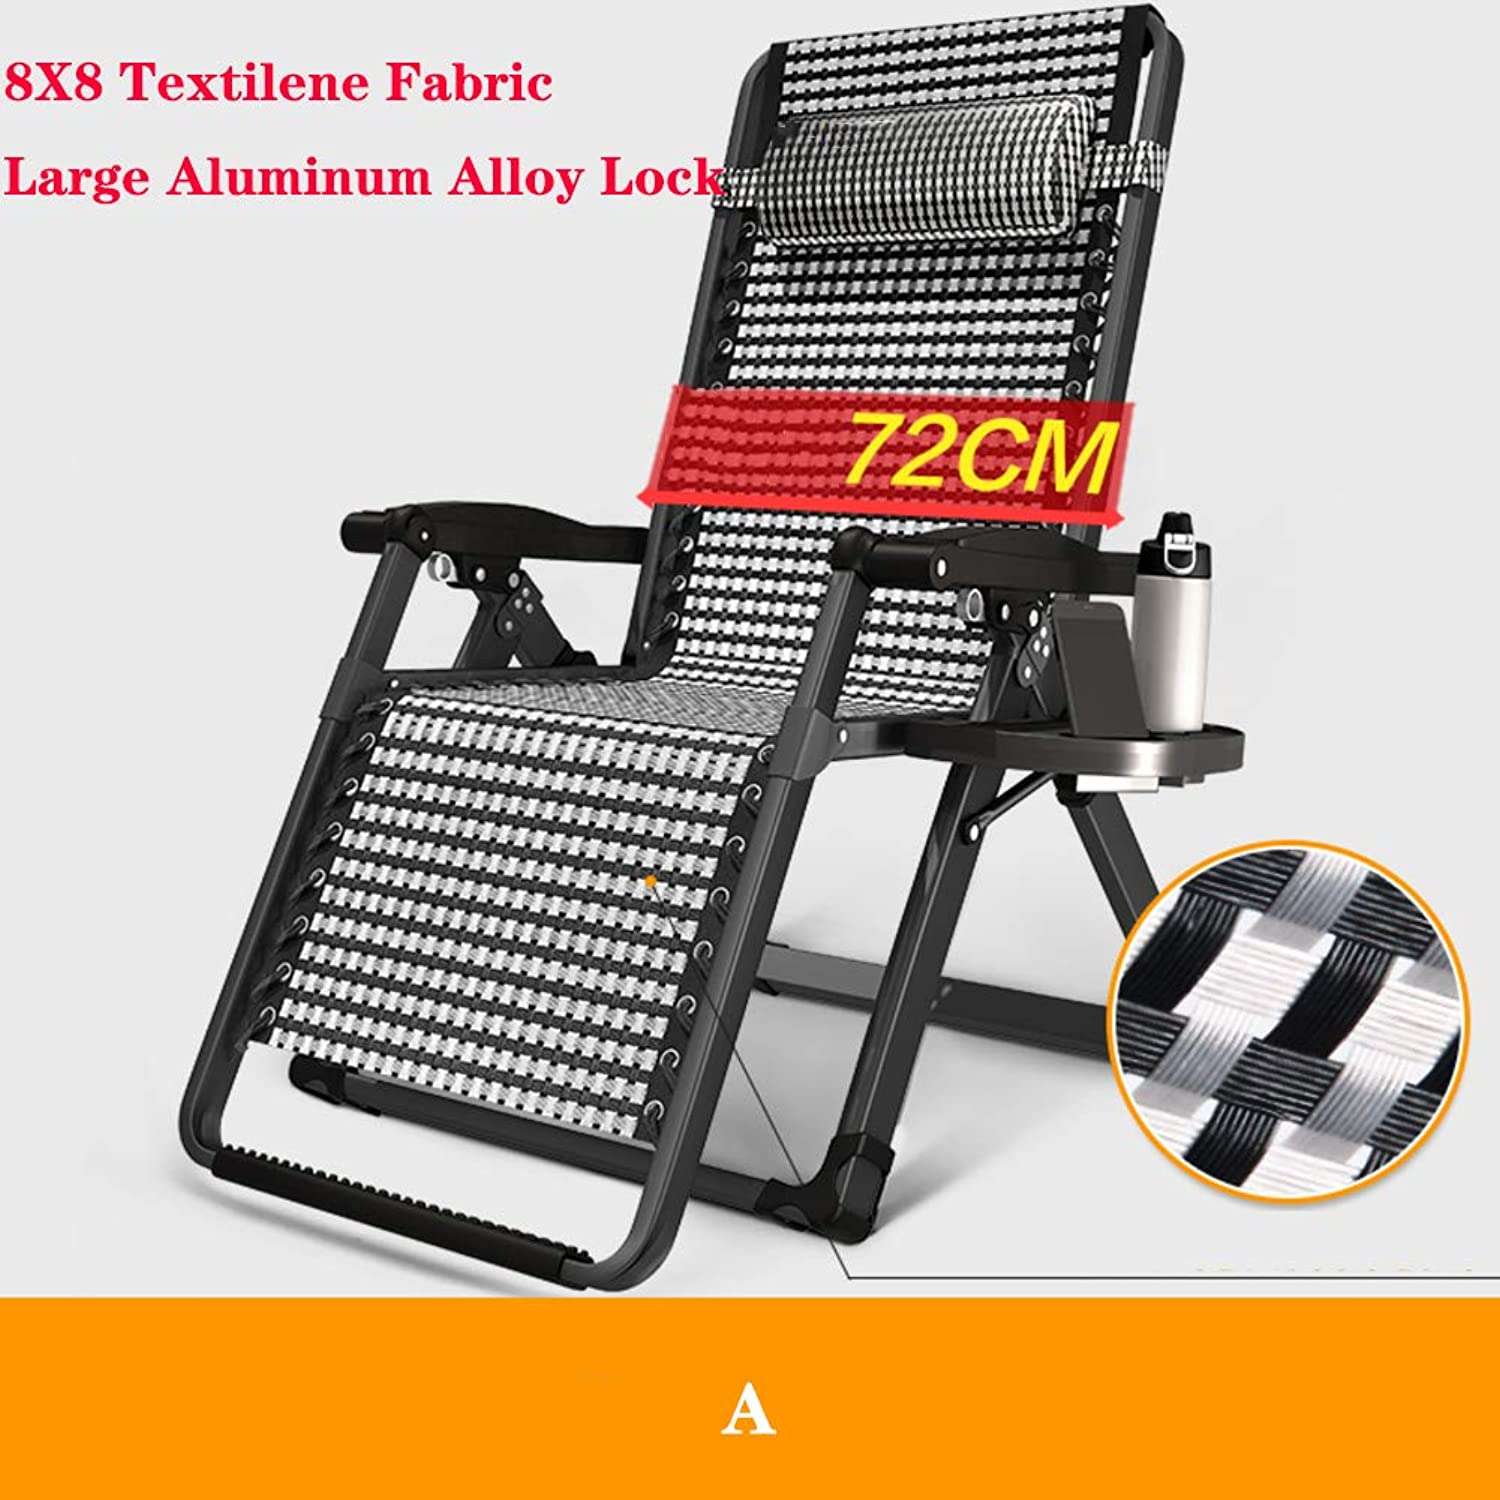 Zero Gravity Locking Lounge Chair Oversize Adjustable Folding Chairs Chaise Recliner with Headrest Outdoor Indoor Patio Pool Support 500lbsa